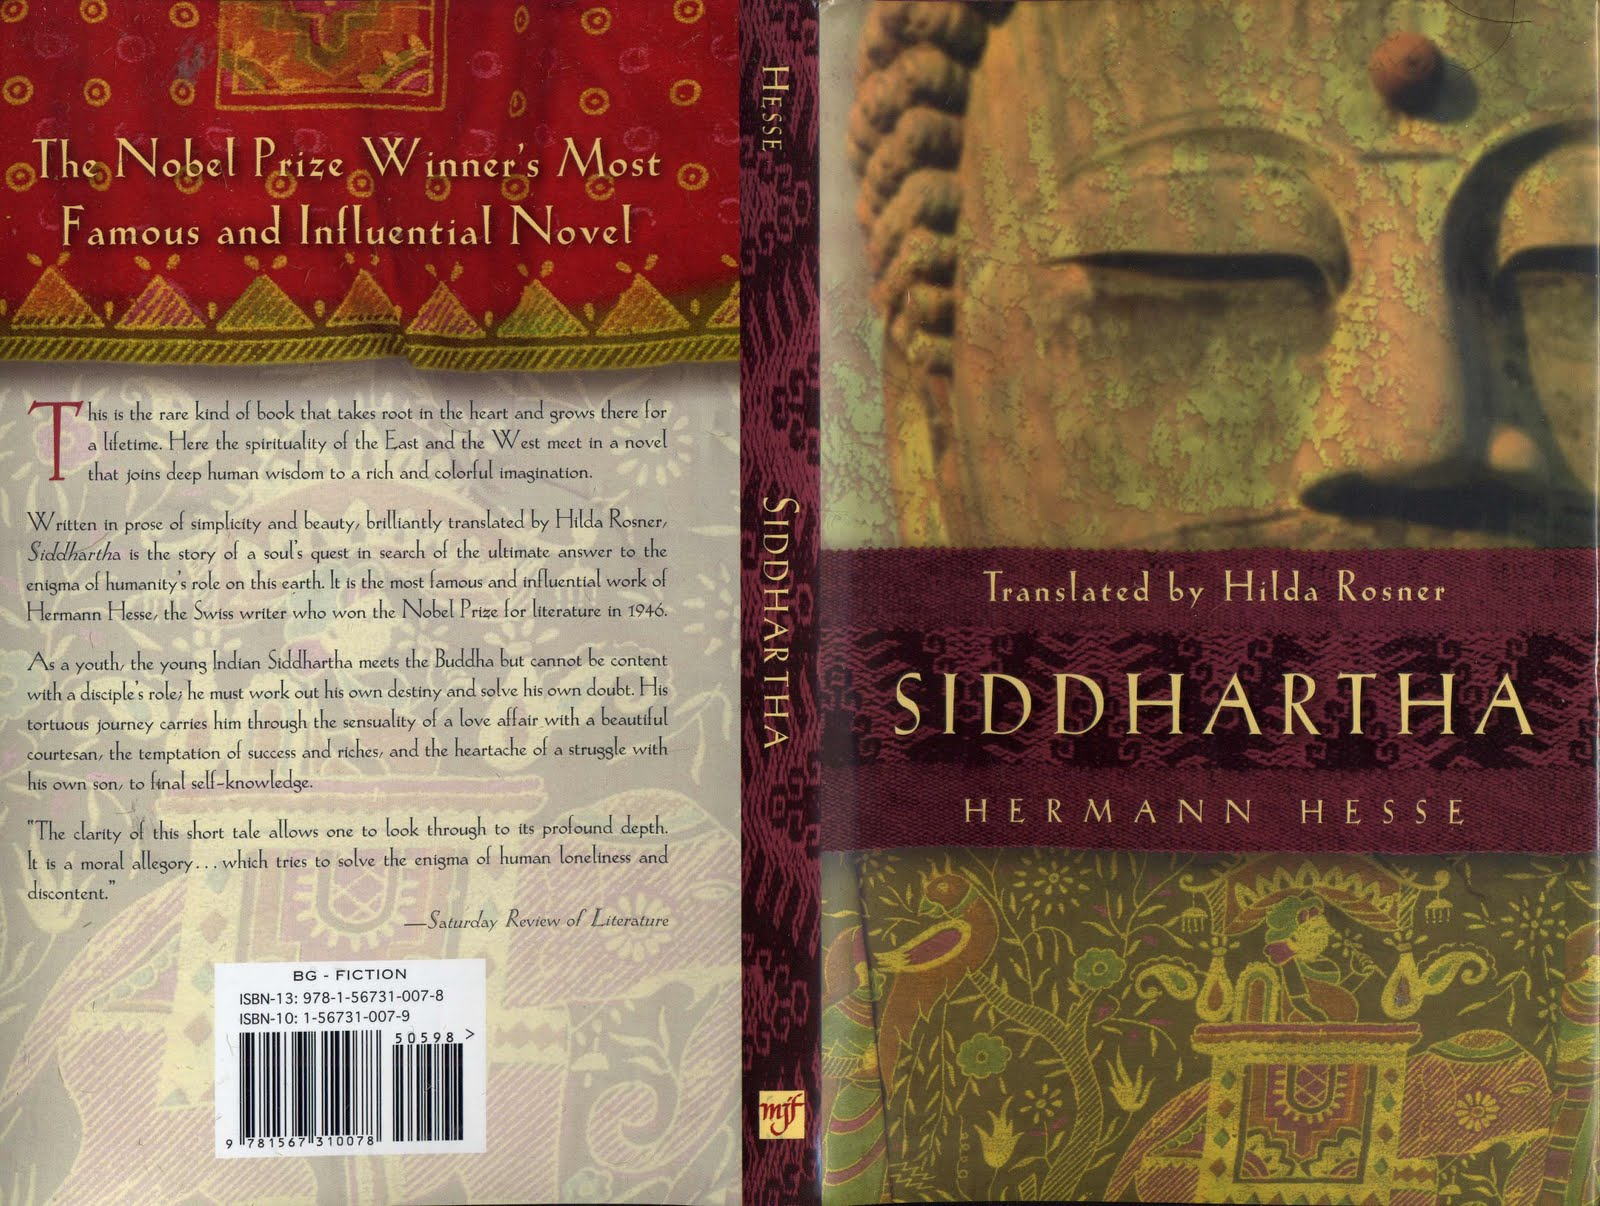 an assessment of the significance of the river in the book siddhartha by hermann hesse Siddhartha is an allegorical novel by hermann hesse which deals with the spiritual journey of an indian boy called siddhartha during the time of the buddha the book was written in german, in a simple, yet powerful and lyrical style.